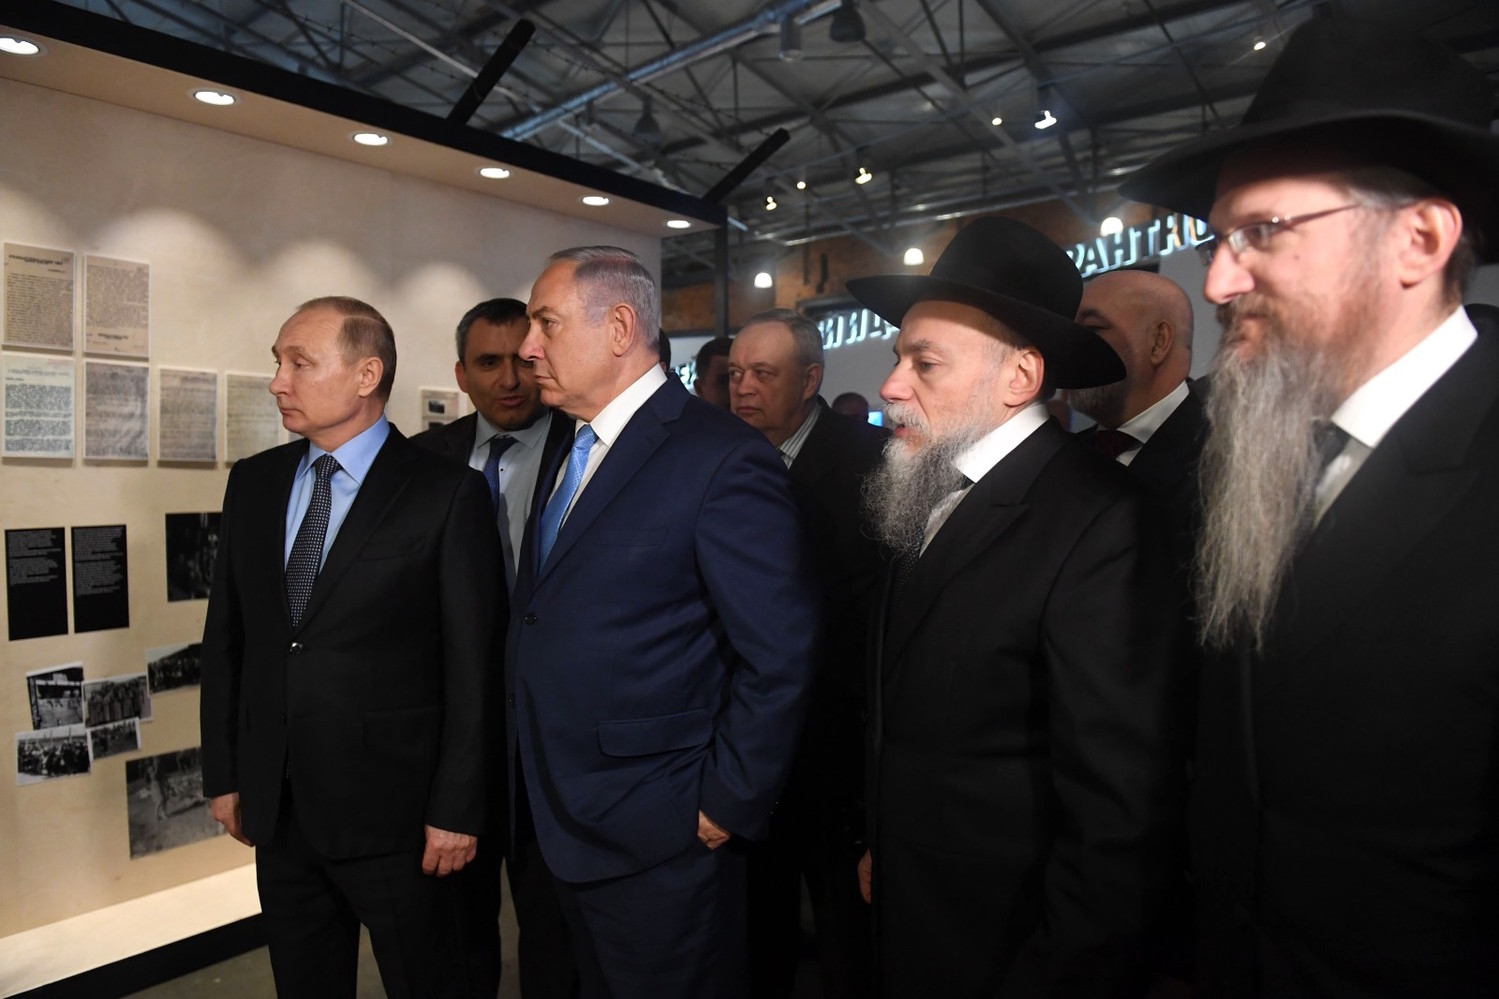 From left: Russian President Vladimir Putin, Israeli Prime Minister Benjamin Netanyahu, Environmental Protection Minister Ze'ev Elkin, and Chief Rabbi of Russia Berel Lazar at the Jewish Museum and Tolerance Center in Moscow on Jan. 29.